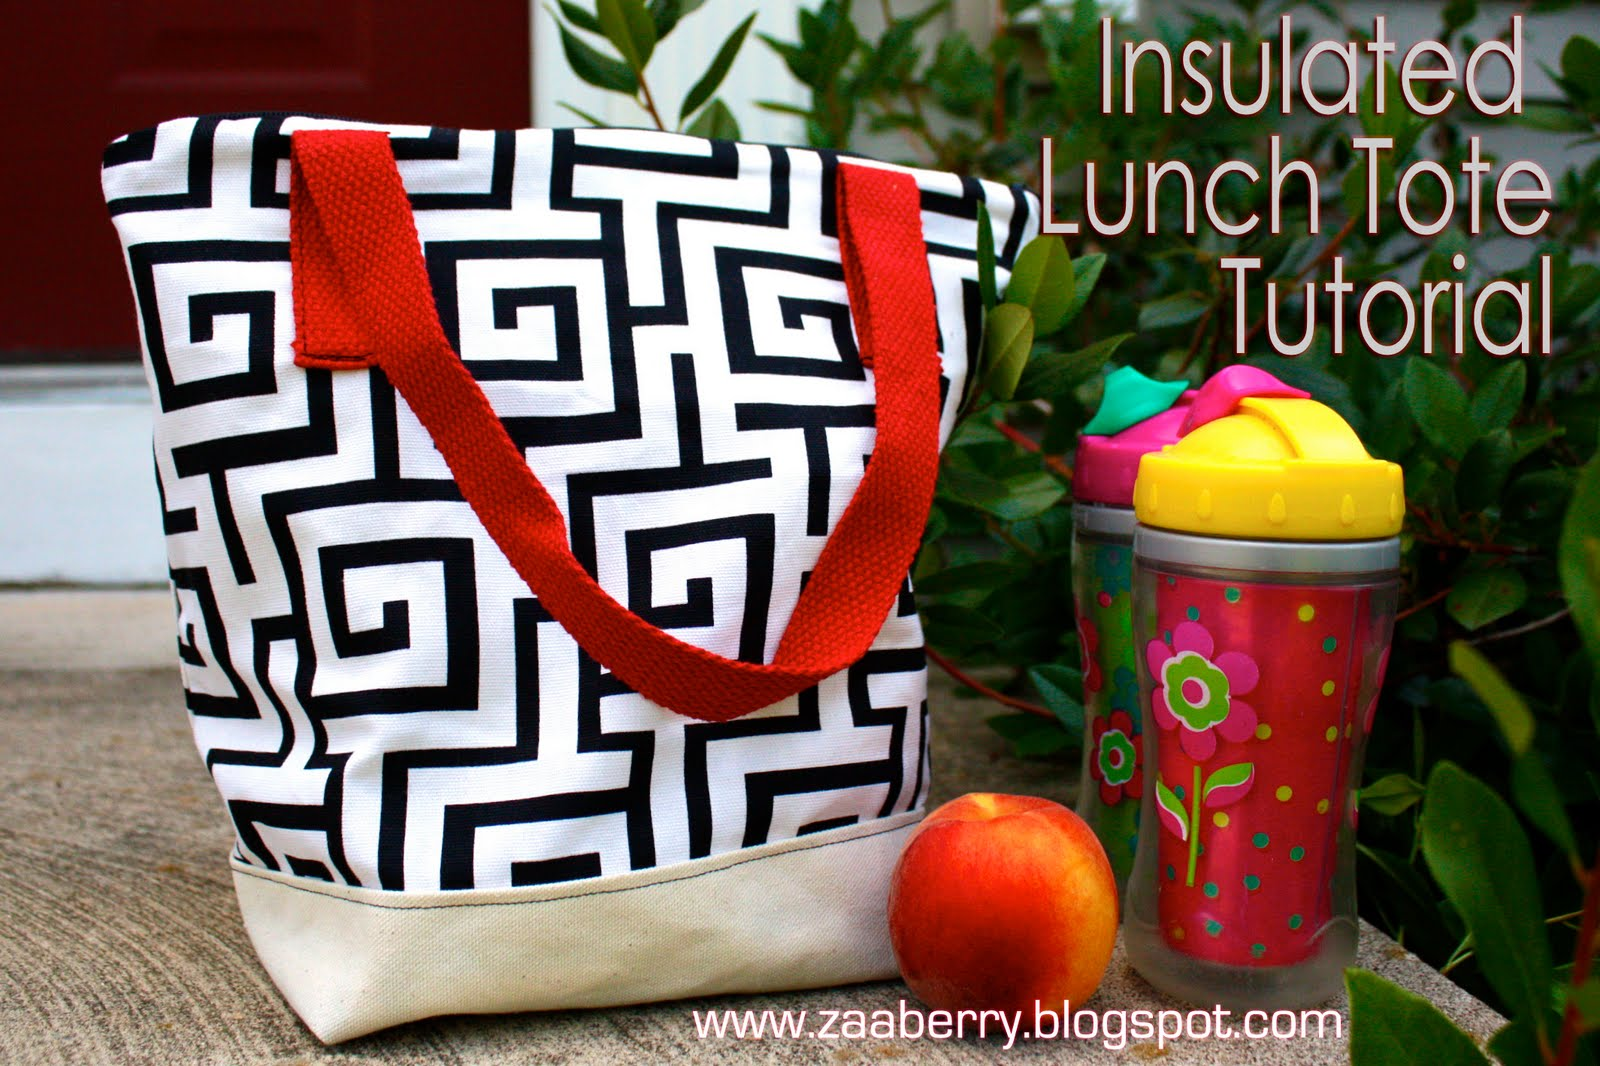 Zaaberry Insulated Lunch Tote Tutorial